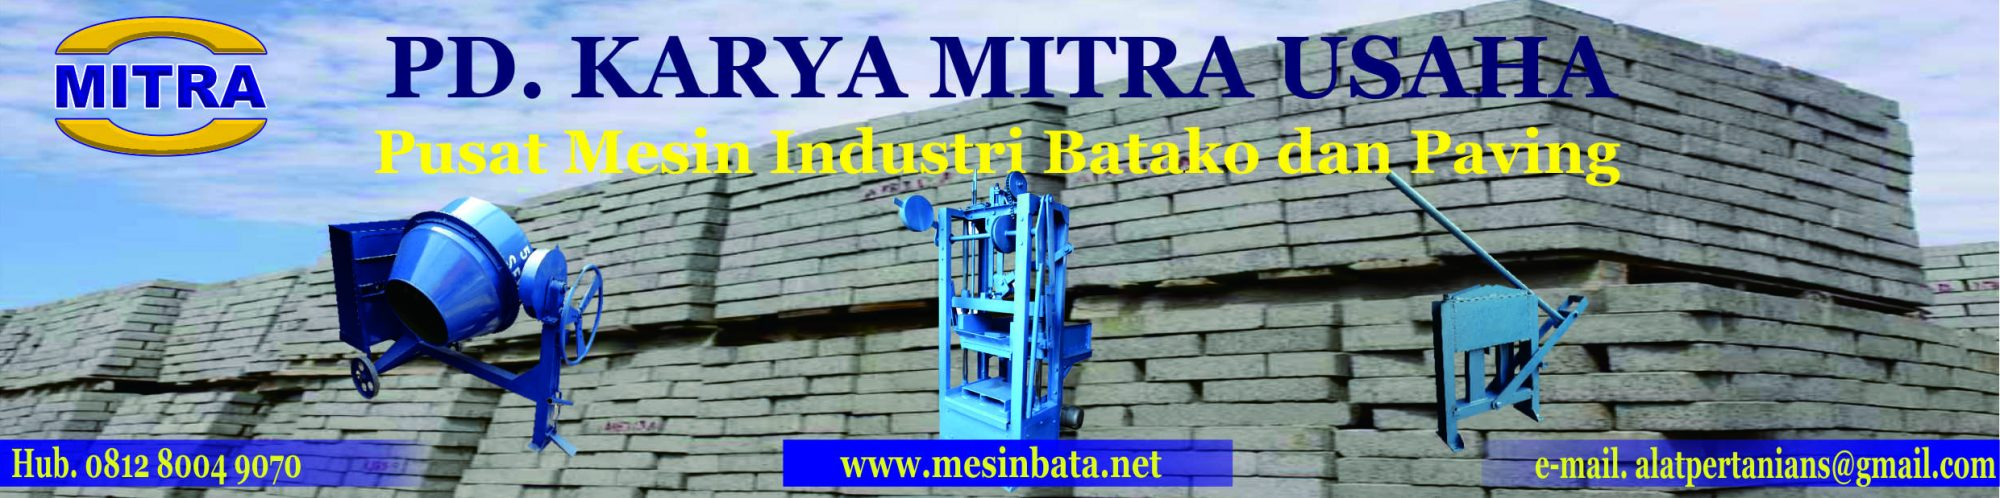 Mesin Press Batako | Mesin Paving Block | Mesin Press Paving Block Hidrolik | Mesin Bata Merah | Cetakan Batako Manual | Cetakan Kanstin | Cetakan Gorong Gorong